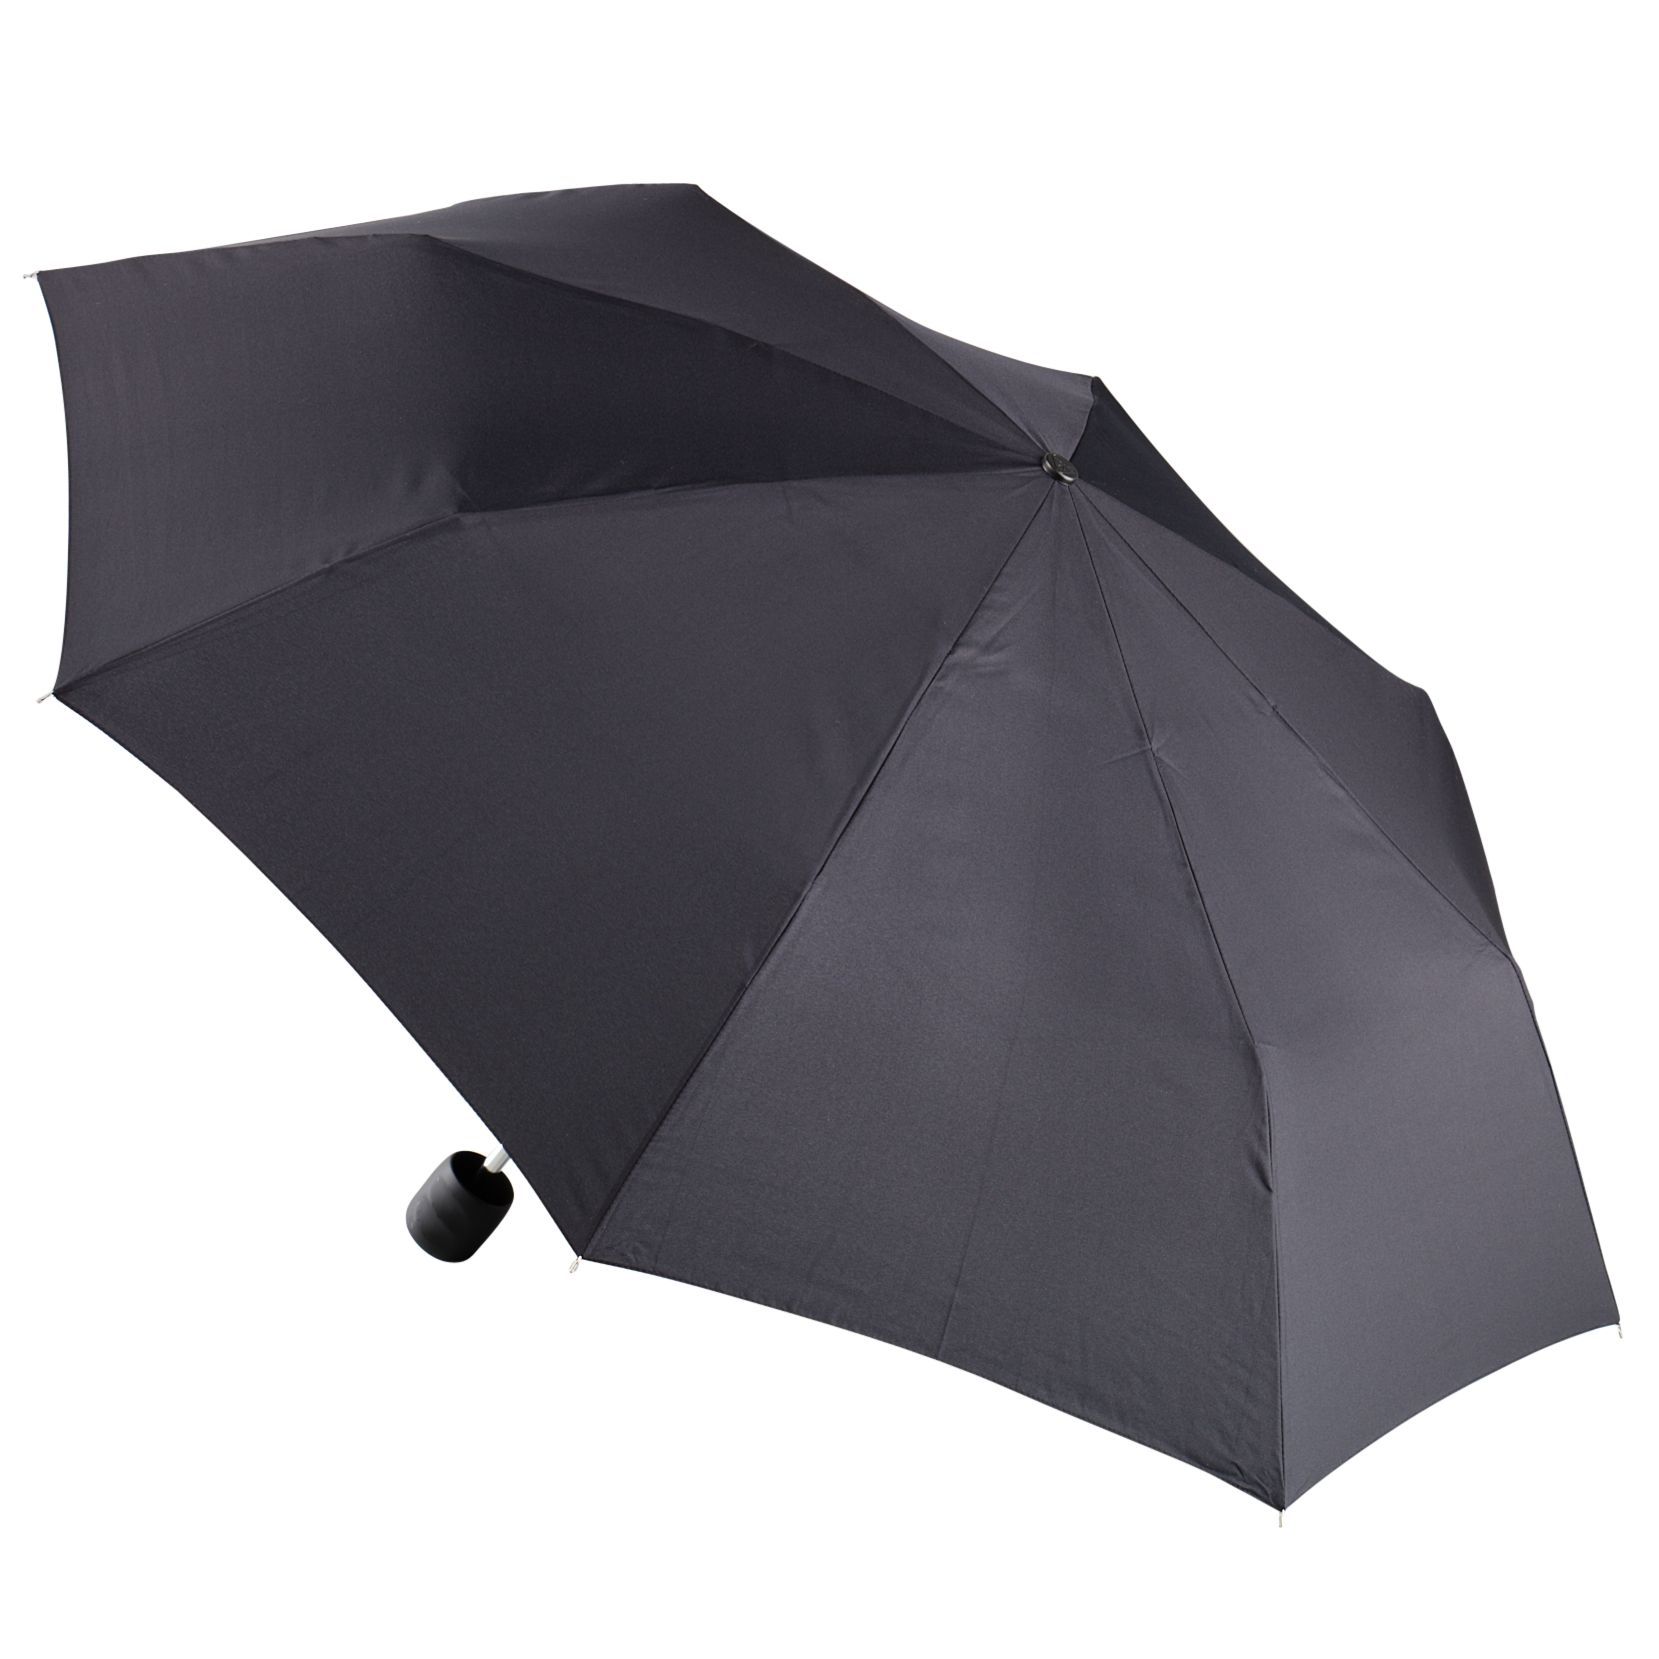 Fulton Fulton Stowaway 23 Umbrella, Black